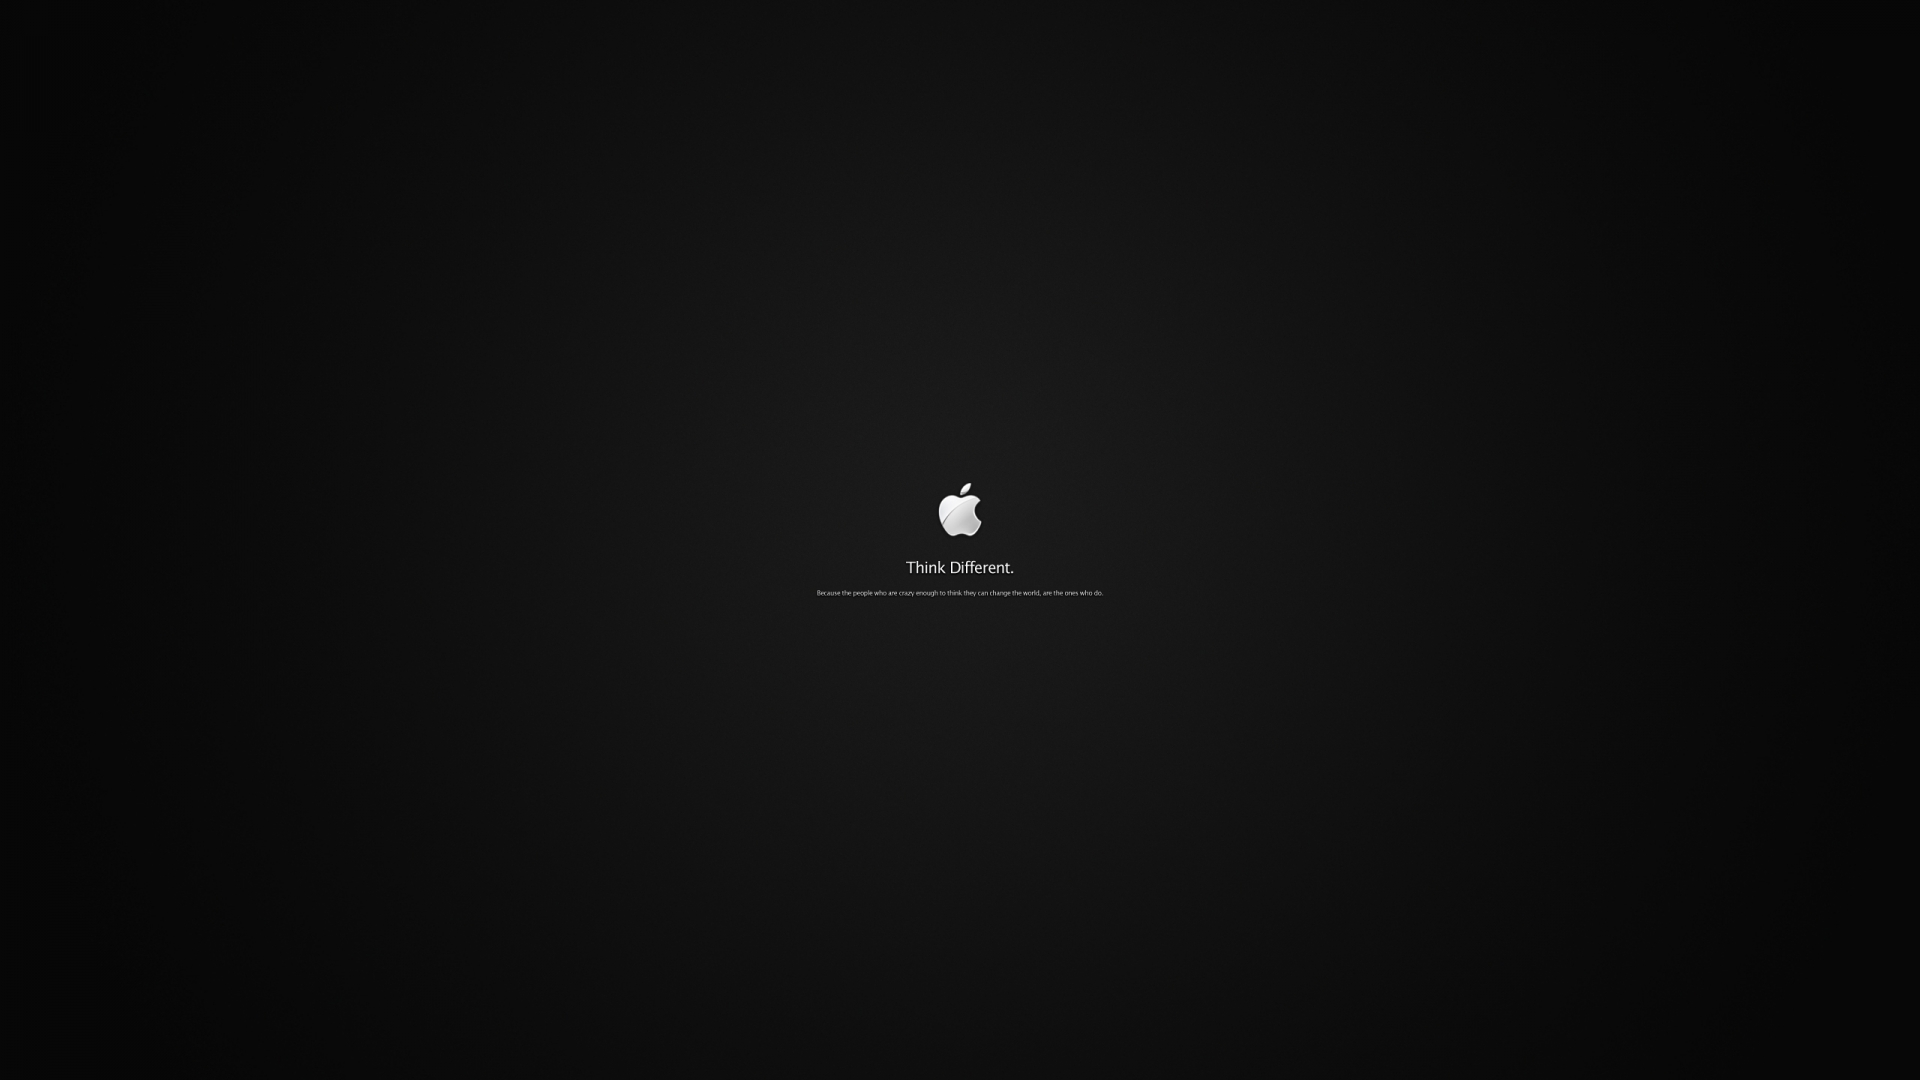 Tiny Apple Logo Wallpaper wallpaper - 964066